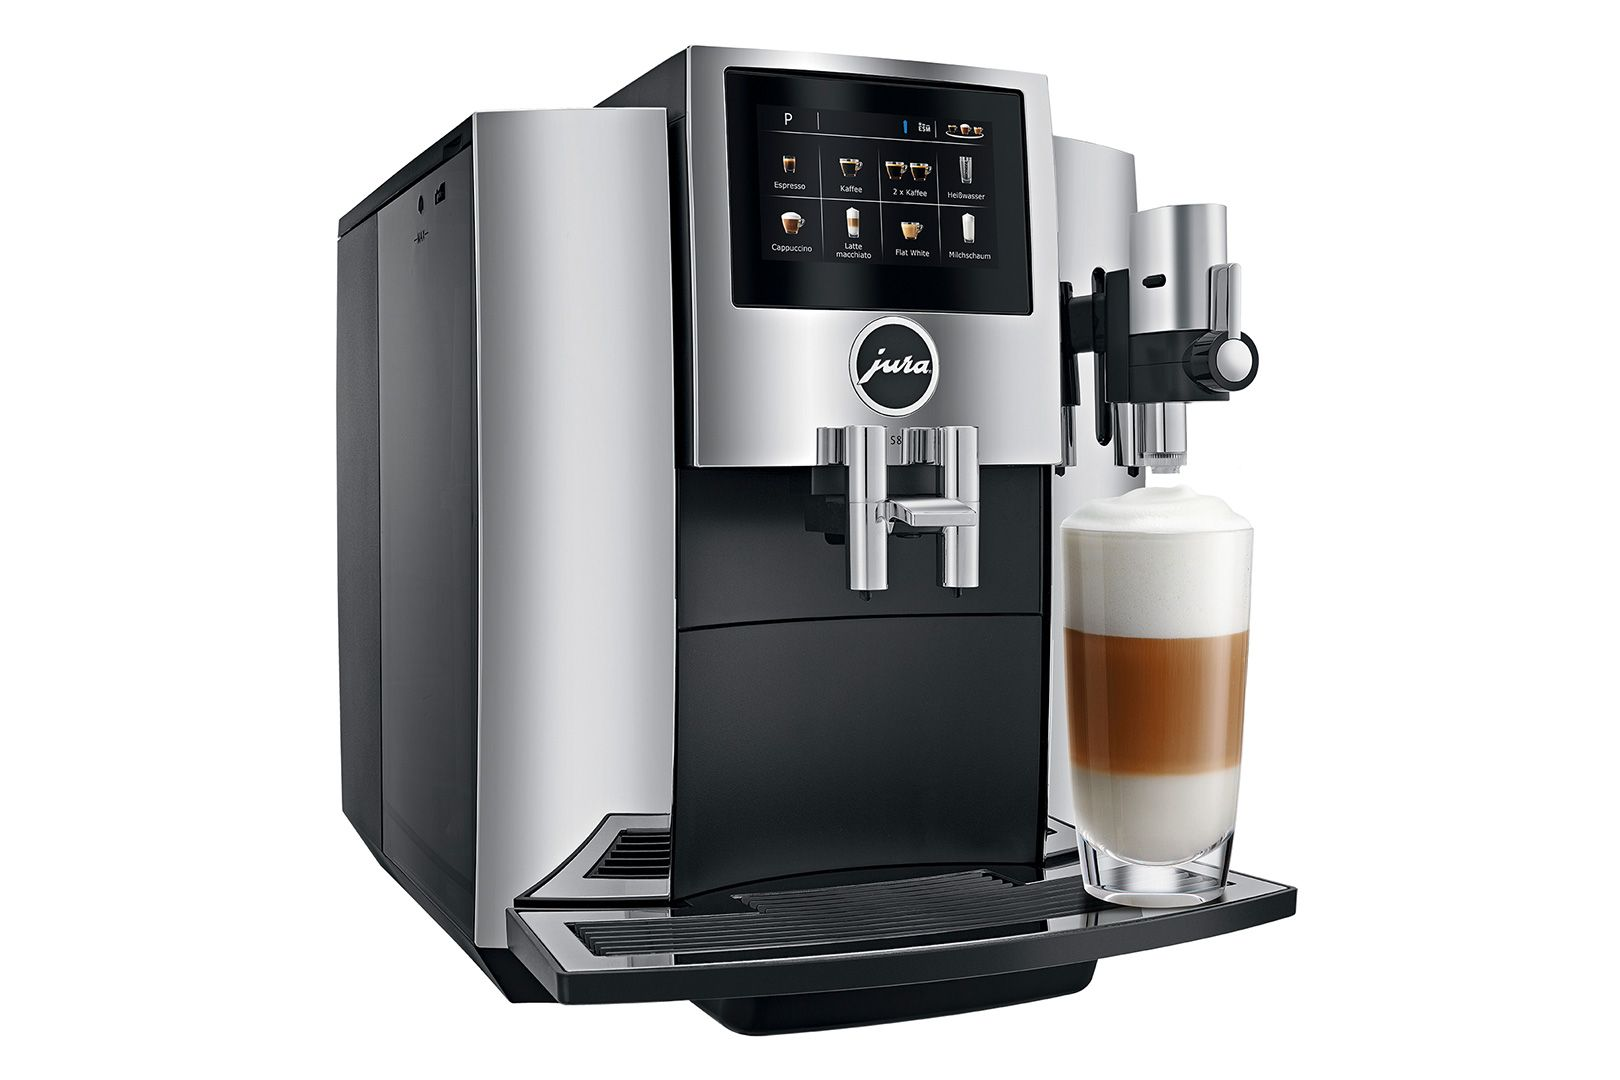 Review Jura S8 automatic coffee machine makes the best